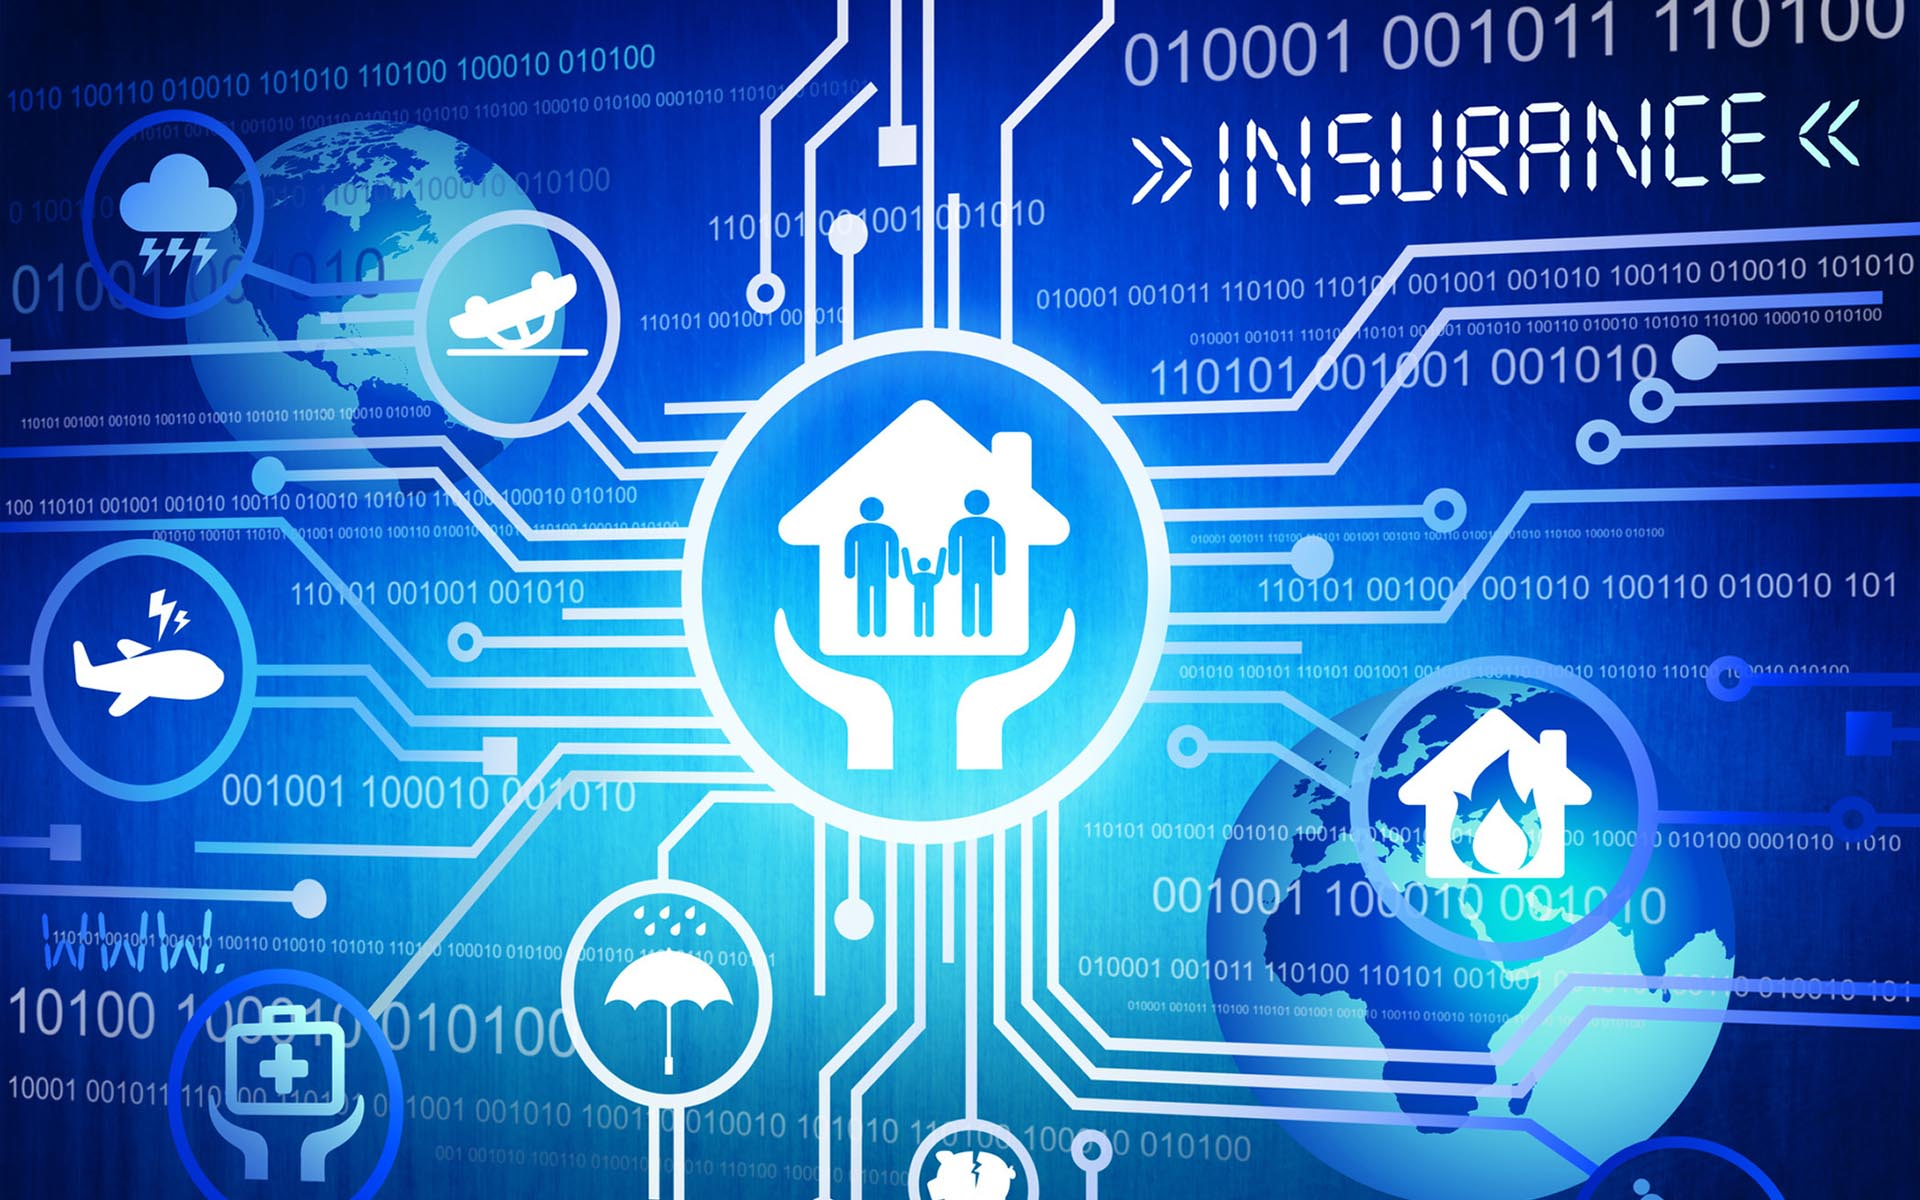 Insurtech Front Page Weekly CXO Briefing - Blockchain not ...